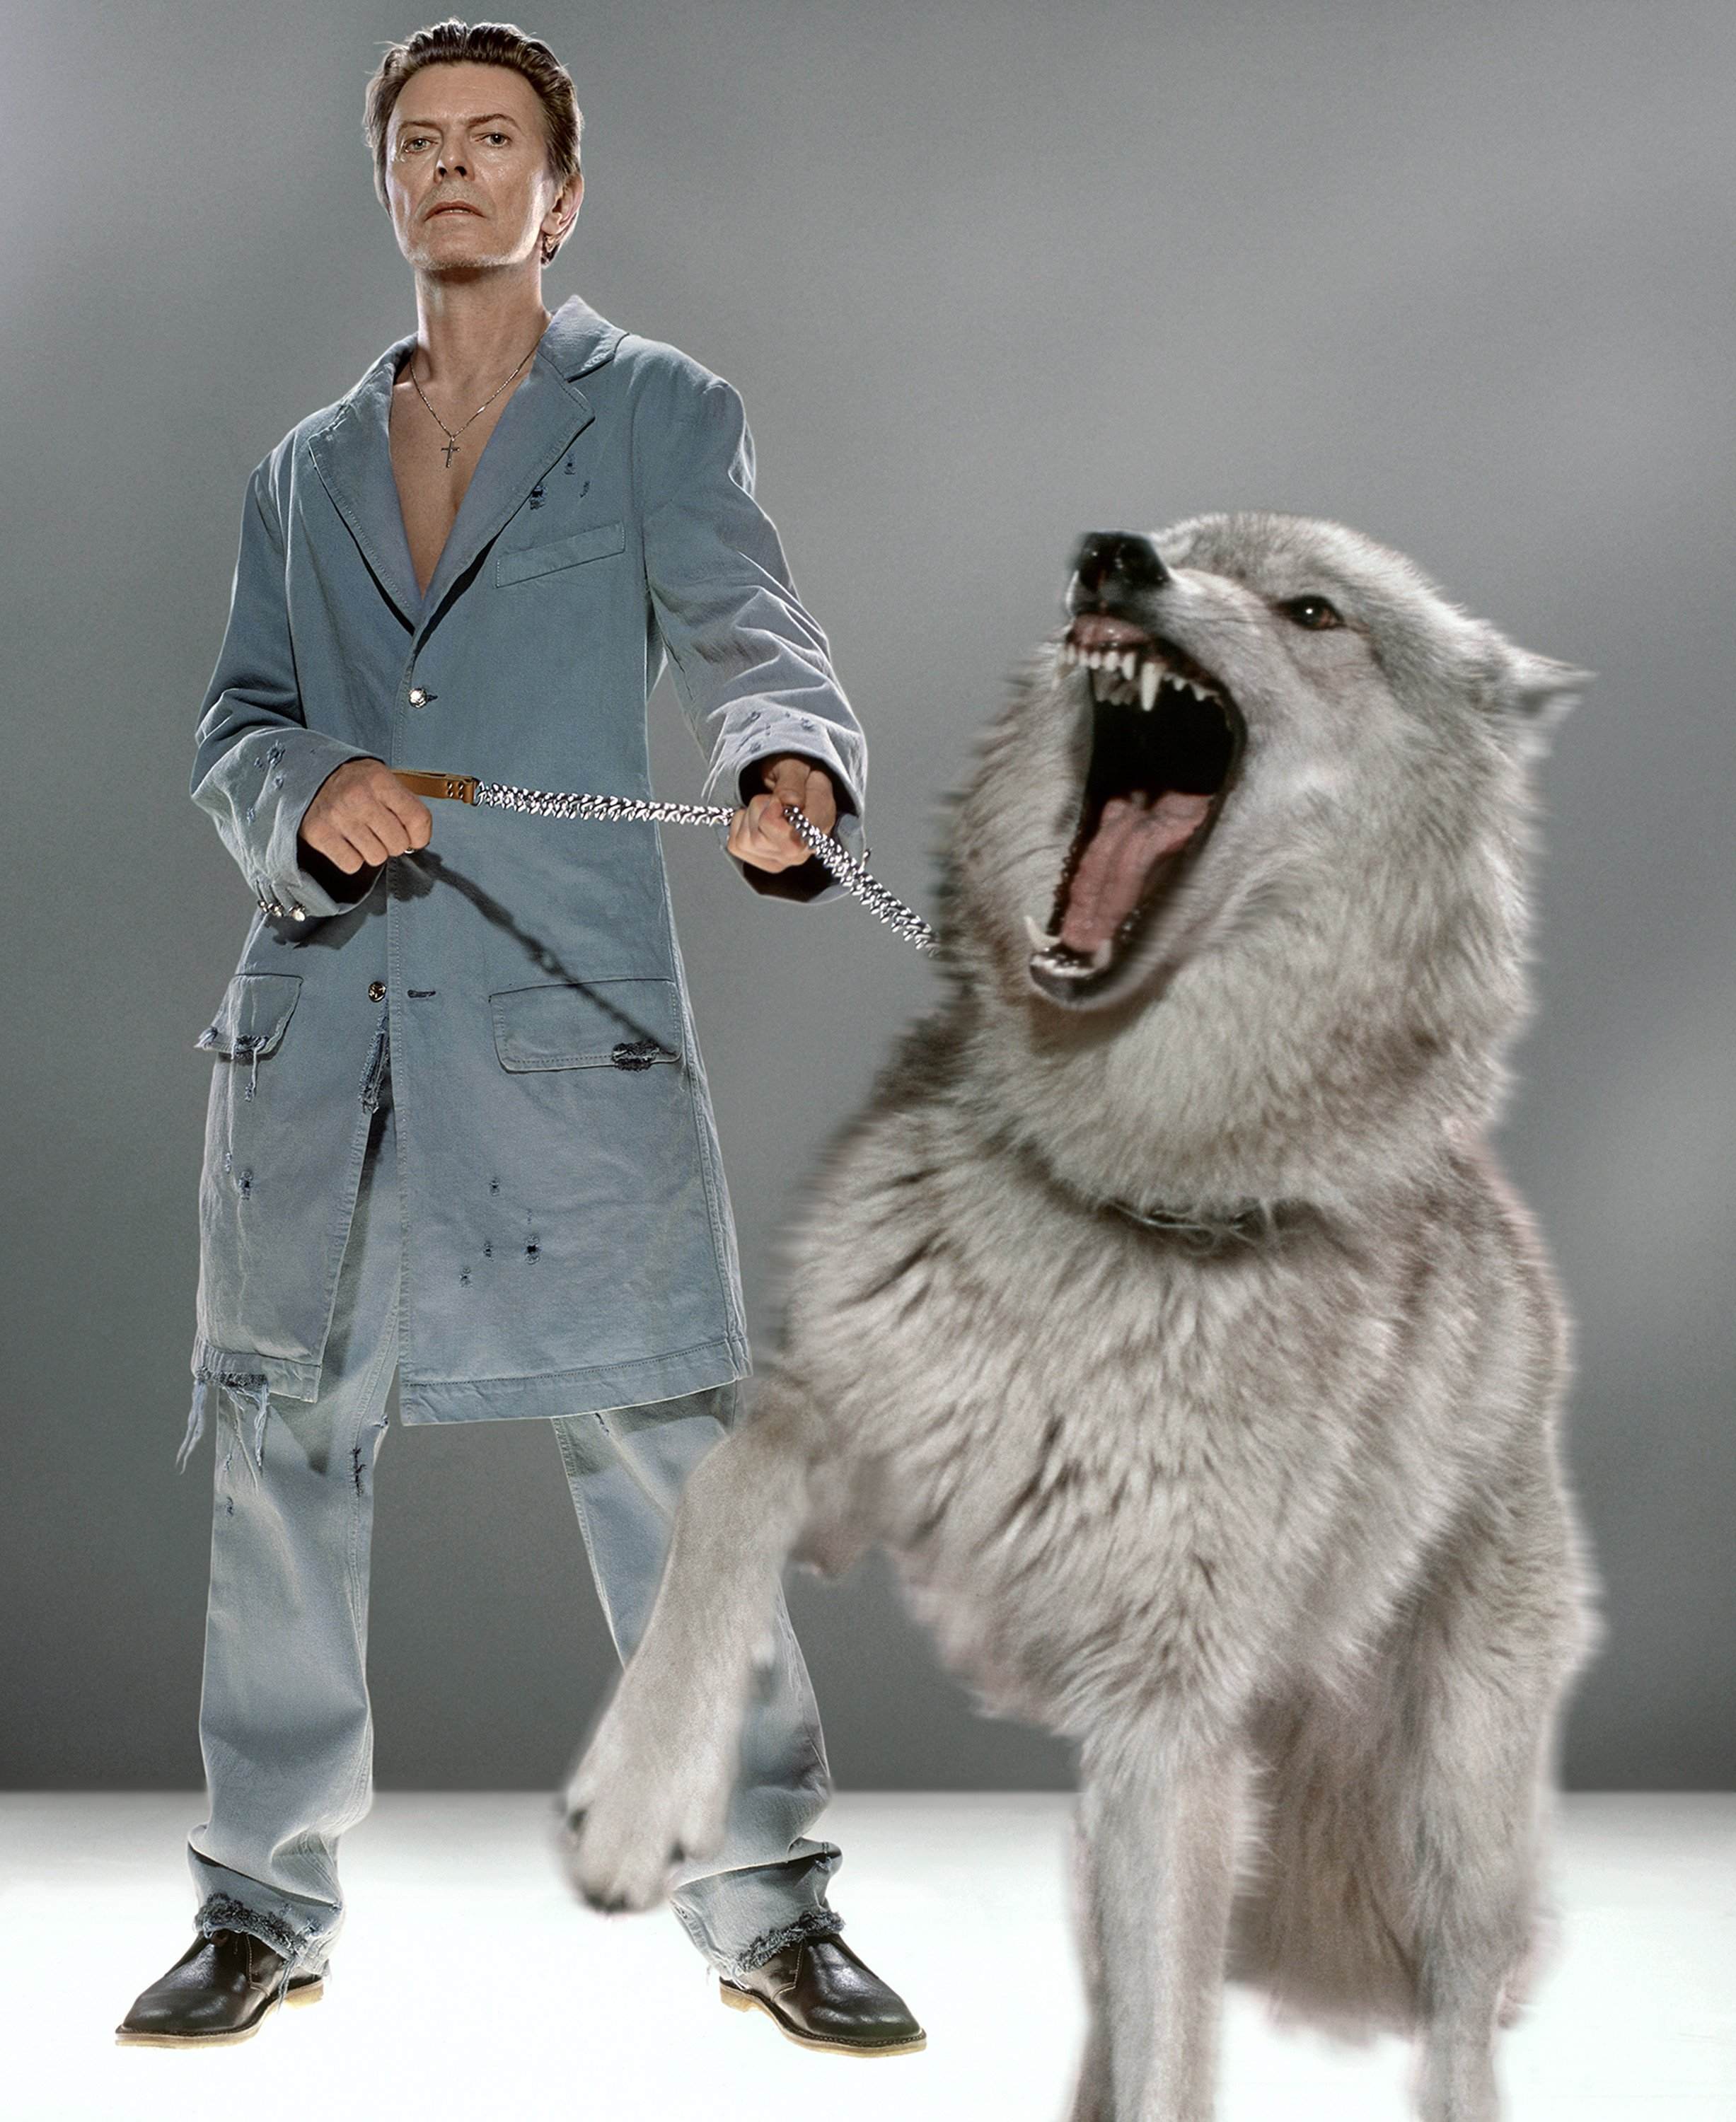 David Bowie with Wolves